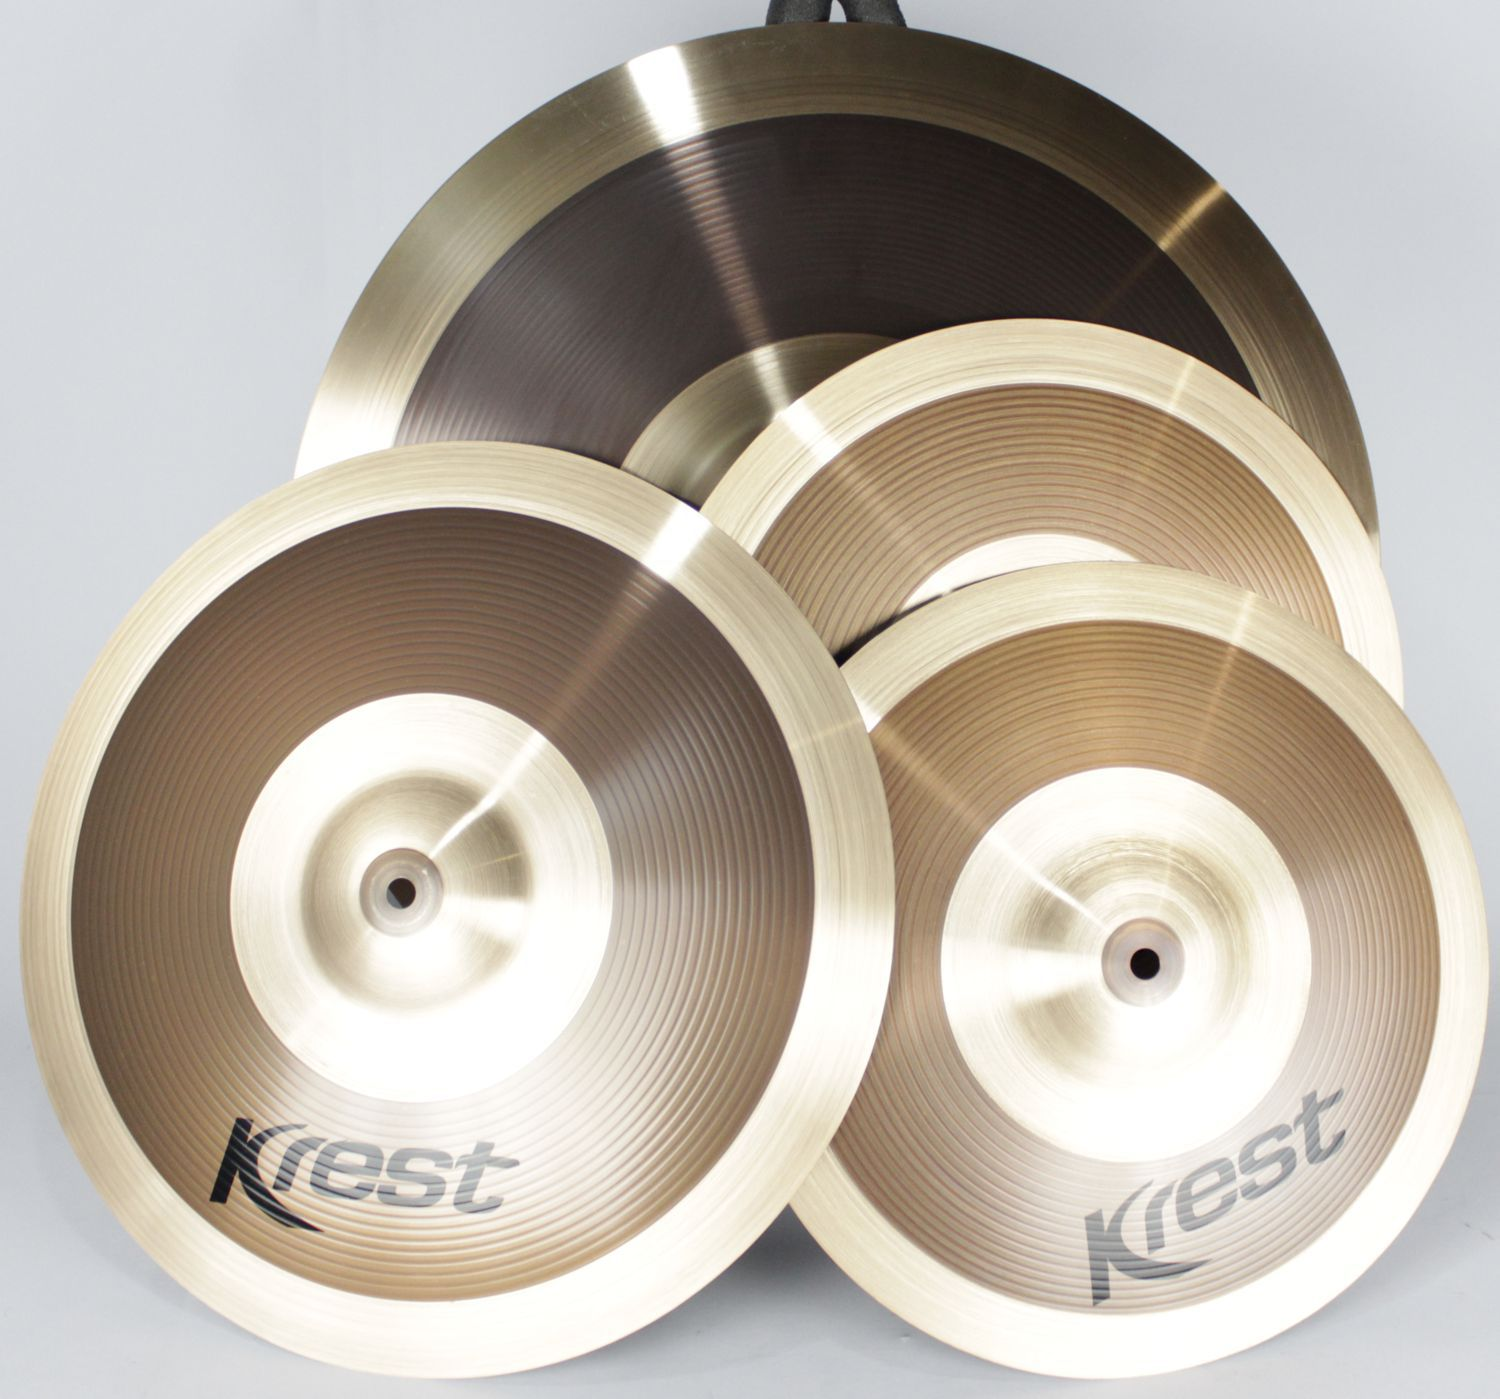 Kit de Pratos ORBIT KREST CYMBALS - Chimbal 14 - Ataque 16 - Ride 20 - Bronze B8